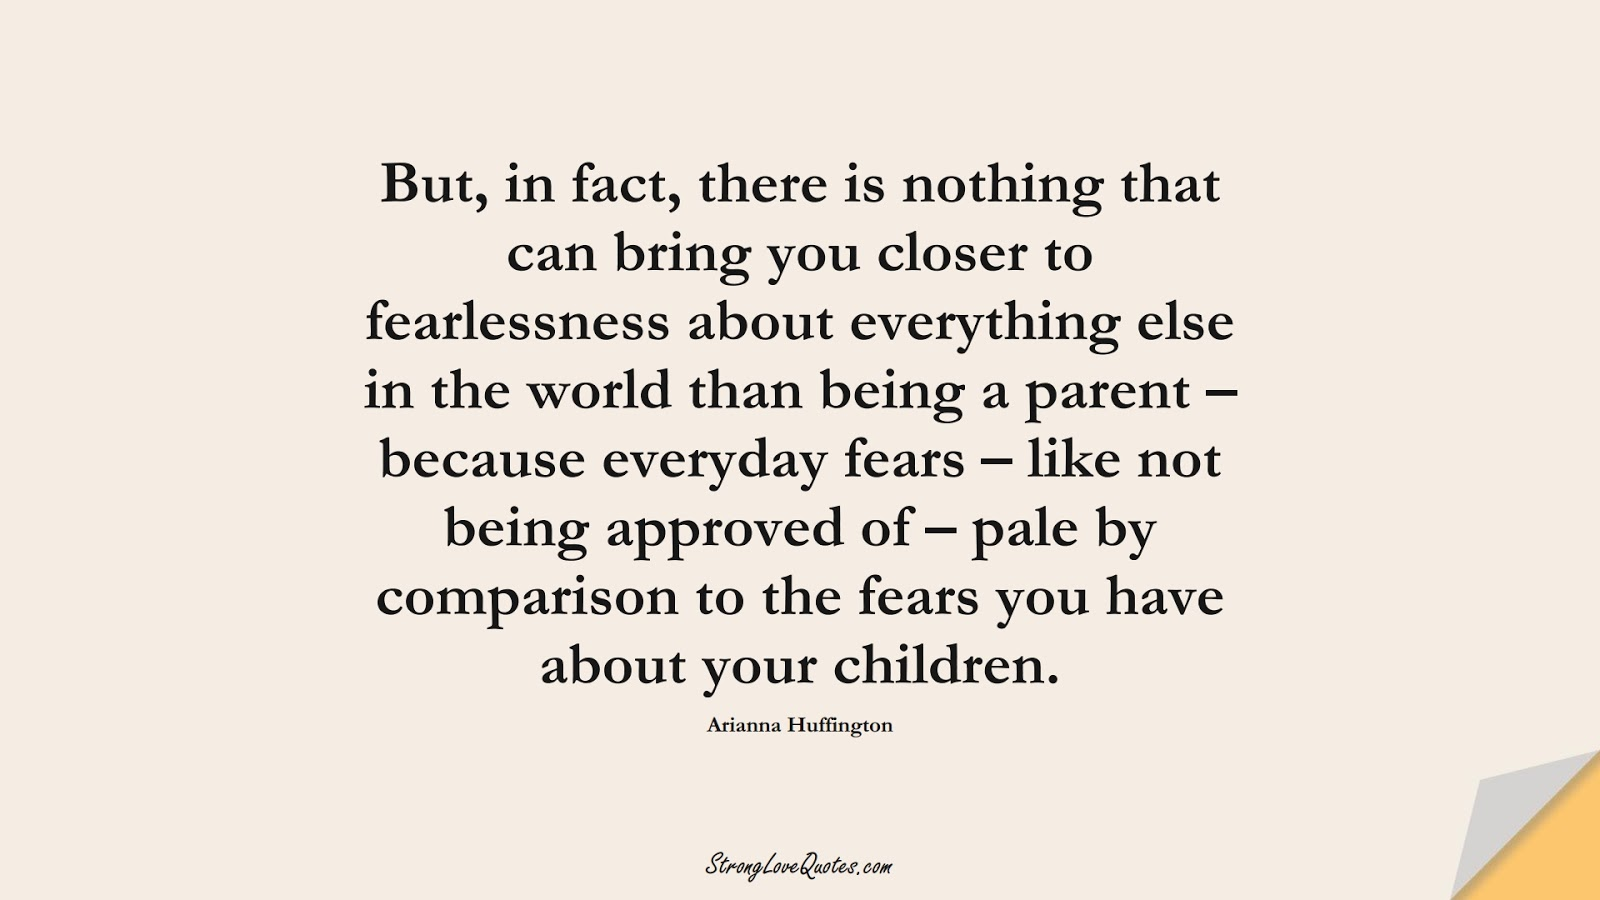 But, in fact, there is nothing that can bring you closer to fearlessness about everything else in the world than being a parent – because everyday fears – like not being approved of – pale by comparison to the fears you have about your children. (Arianna Huffington);  #EducationQuotes